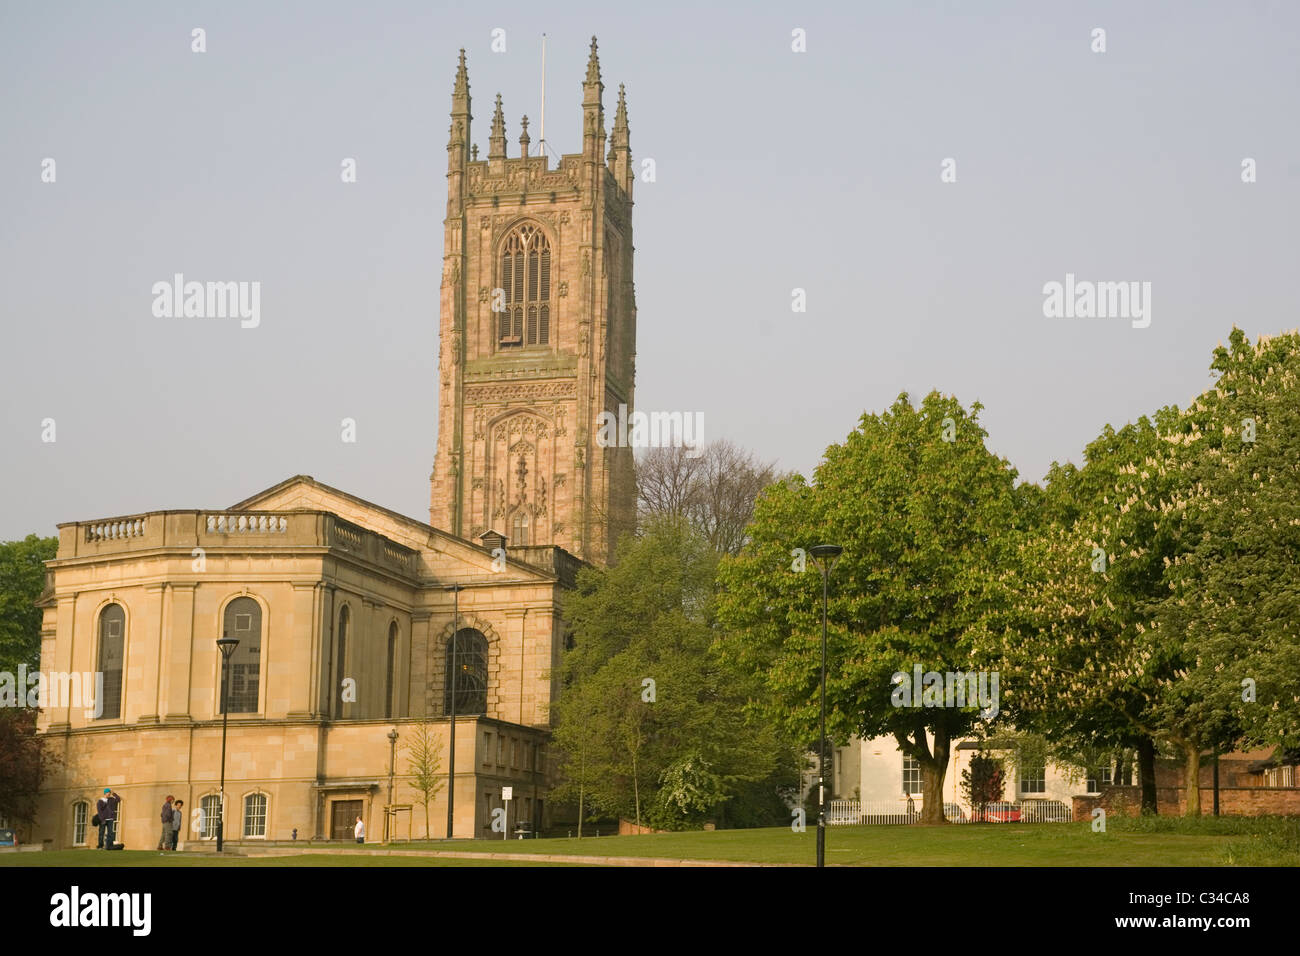 England Derby cathedral - Stock Image